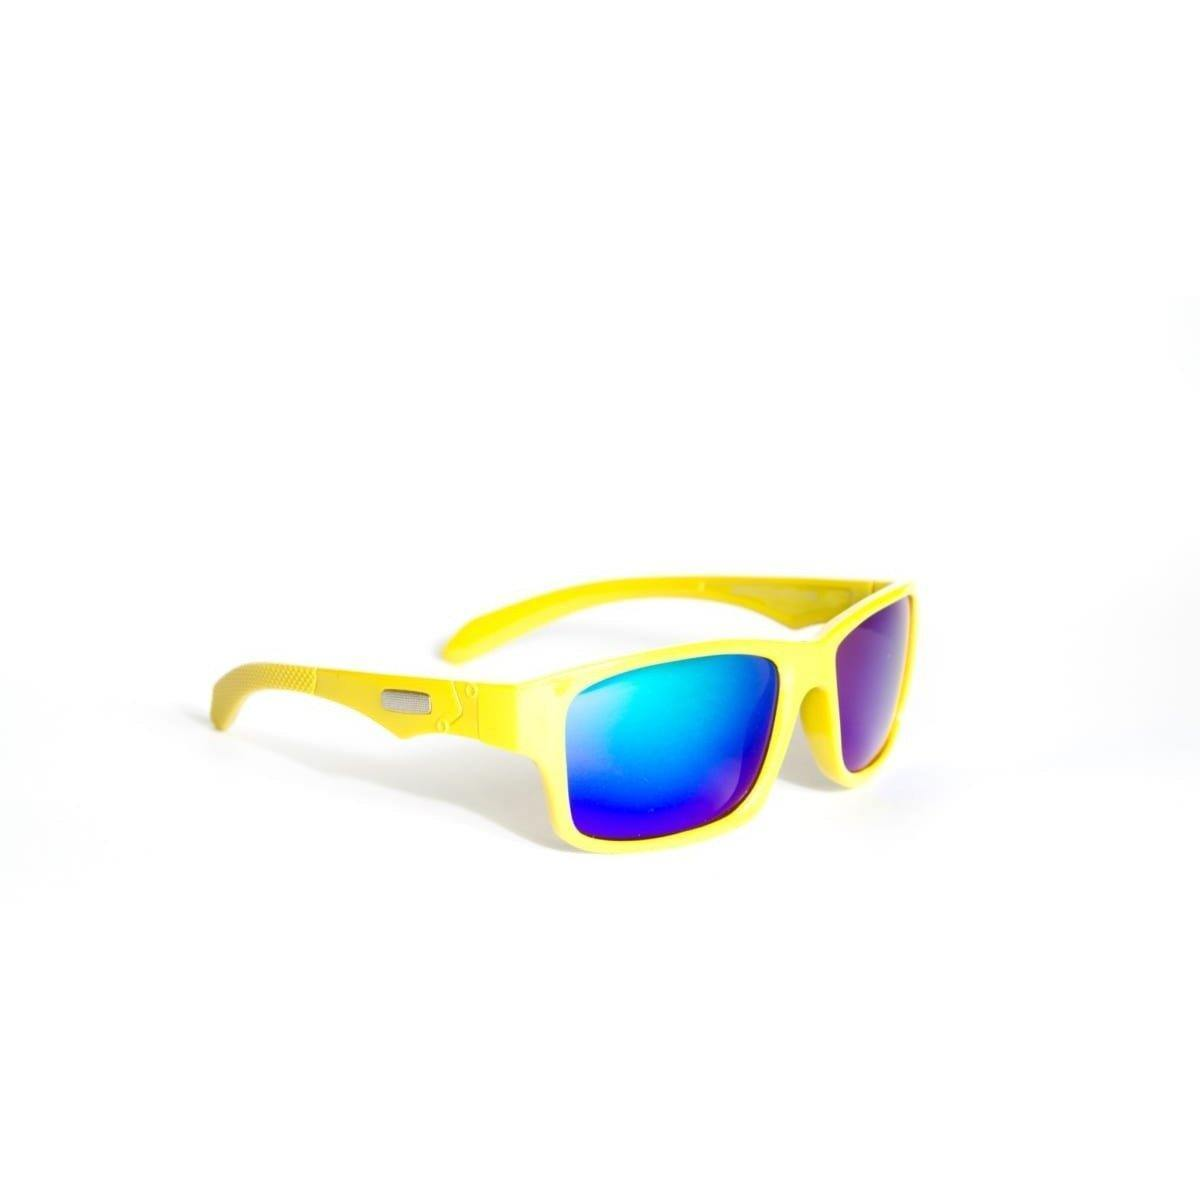 "Sports Sunglasses Designer Sunglasses Model ""Van Man"" By: The Ever Collection"